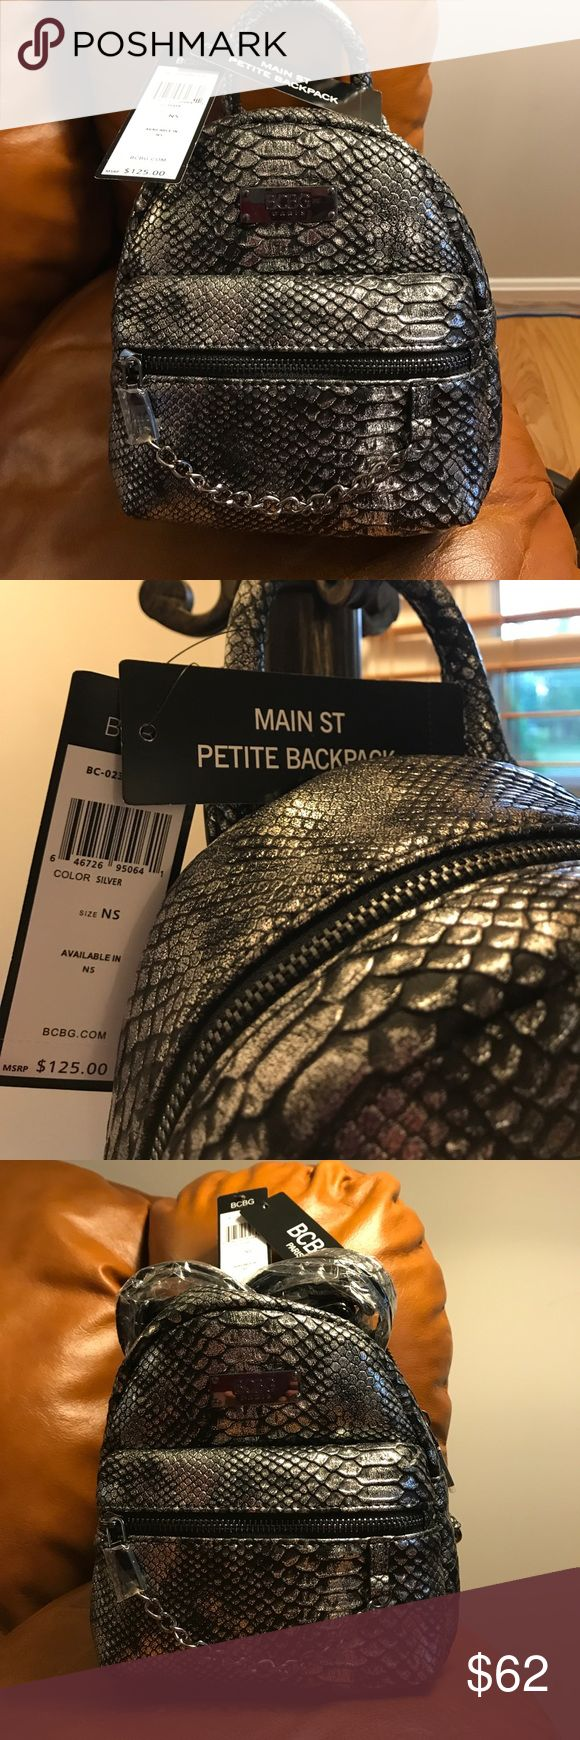 "BCBG MINI BACKPACK SILVER NWT BCBG MINI BACKPACK SILVER NWT. Main Street Petite Backpack. Silver. Snakeskin Silver Patten. Brand new with tags and wrapped straps. Front pocket. 1 slip pocket inside. Adjustable straps. Top Handle. Approx 7"" w x 8"" x 3"" deep. BCBG Bags Mini Bags"